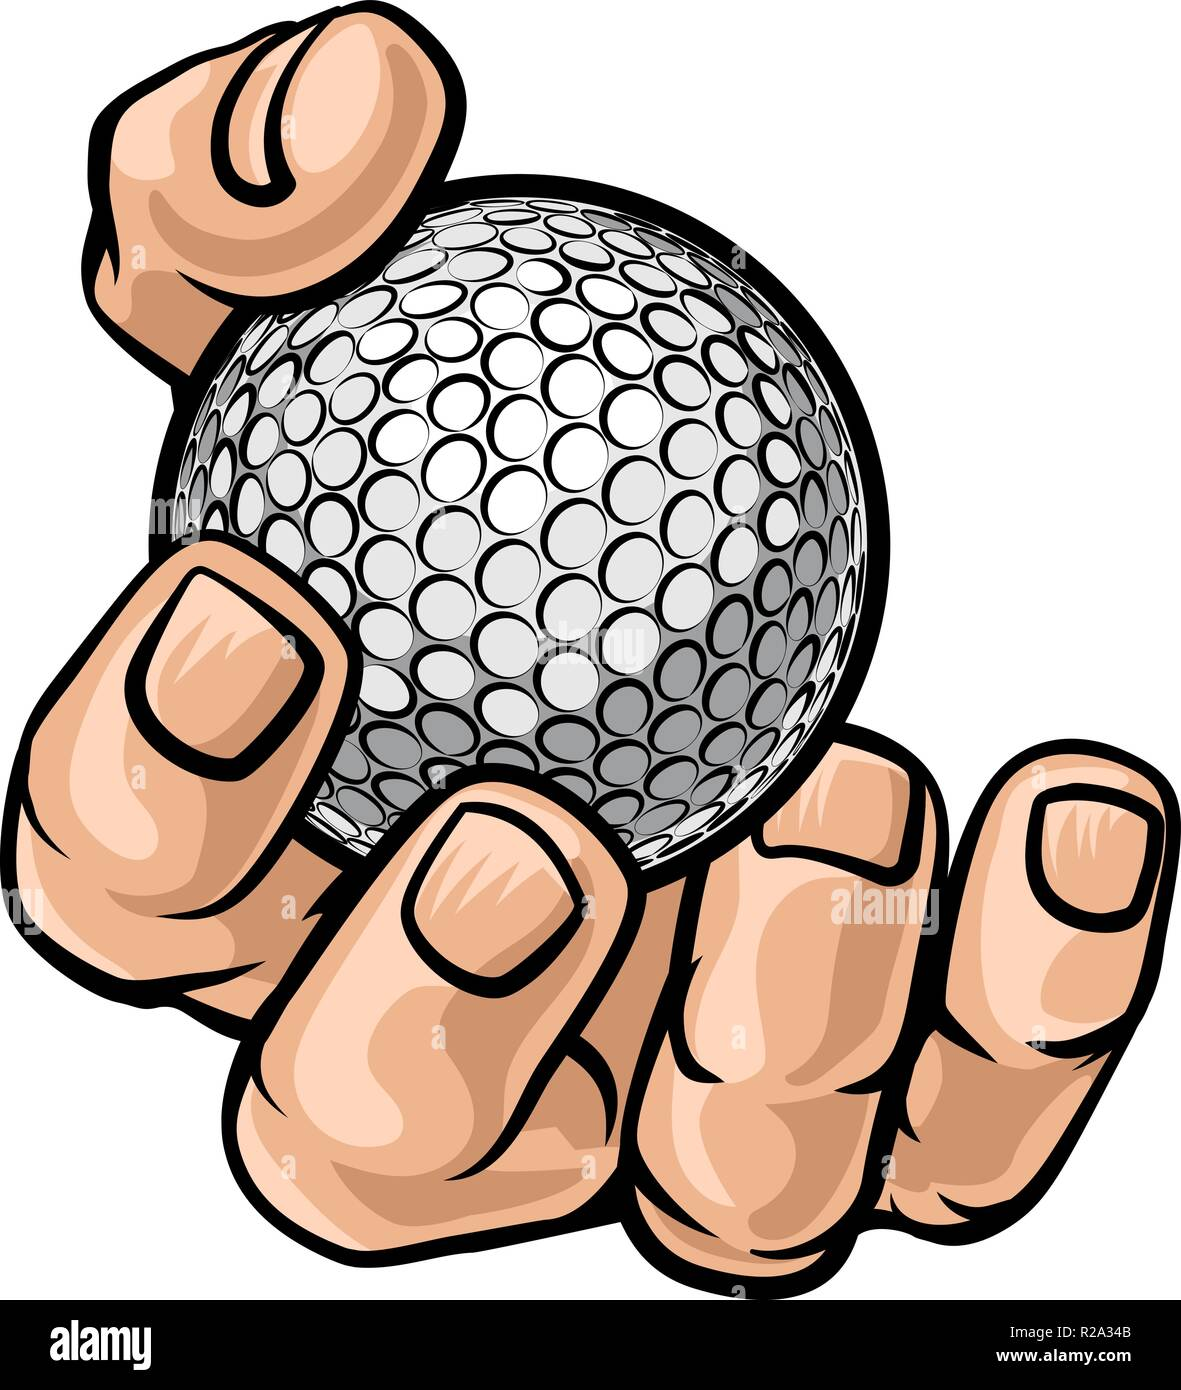 Hand Holding Golf Ball Stock Vector Art Illustration Vector Image